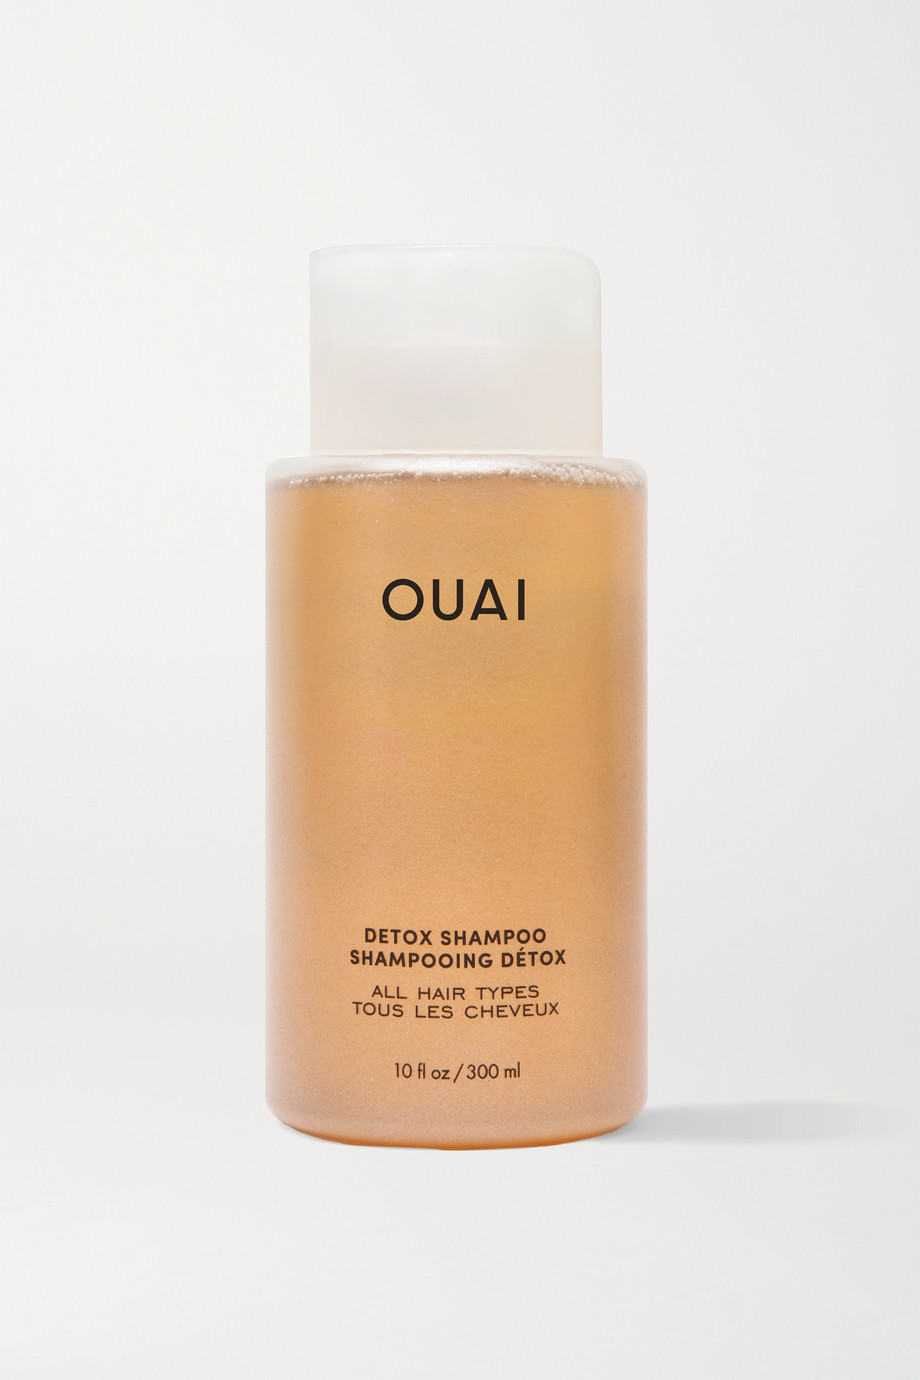 OUAI HAIRCARE Detox Shampoo, 300ml